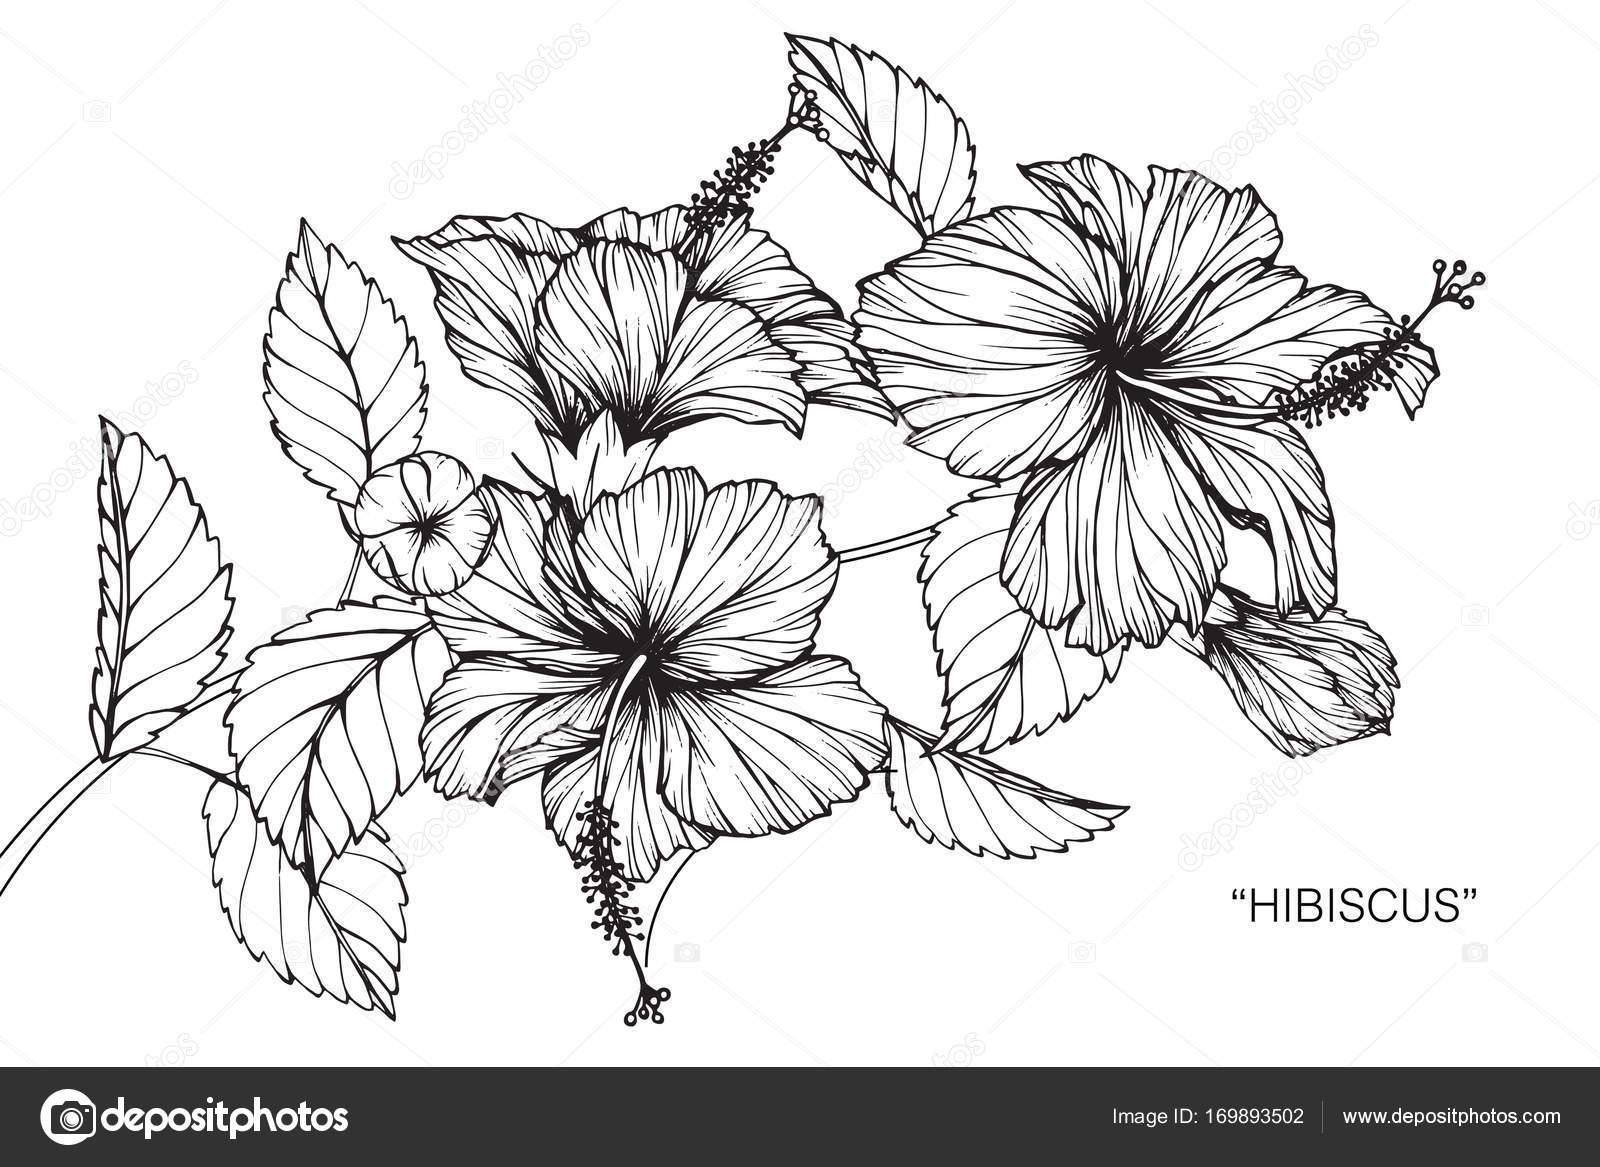 Hibiscus Flower Drawing Sketch Black White Line Art